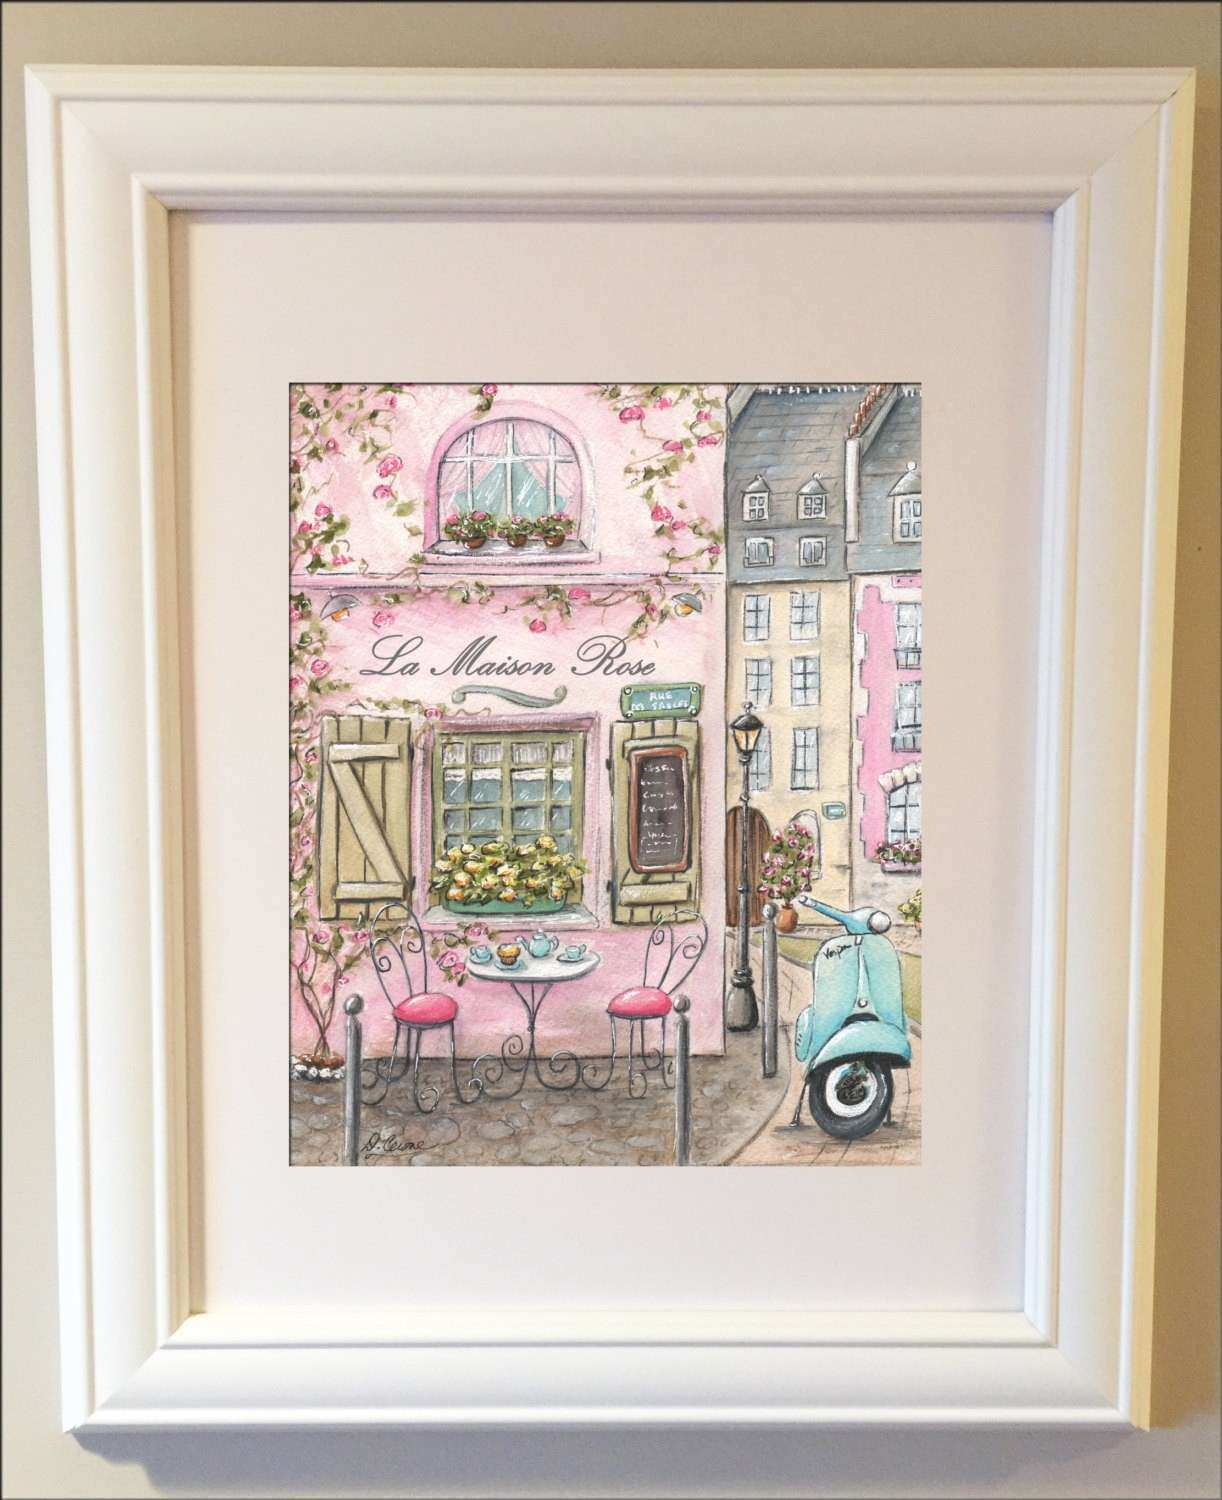 Paris Decor Cafe Wall Art La Maison Rose Personalized Baby